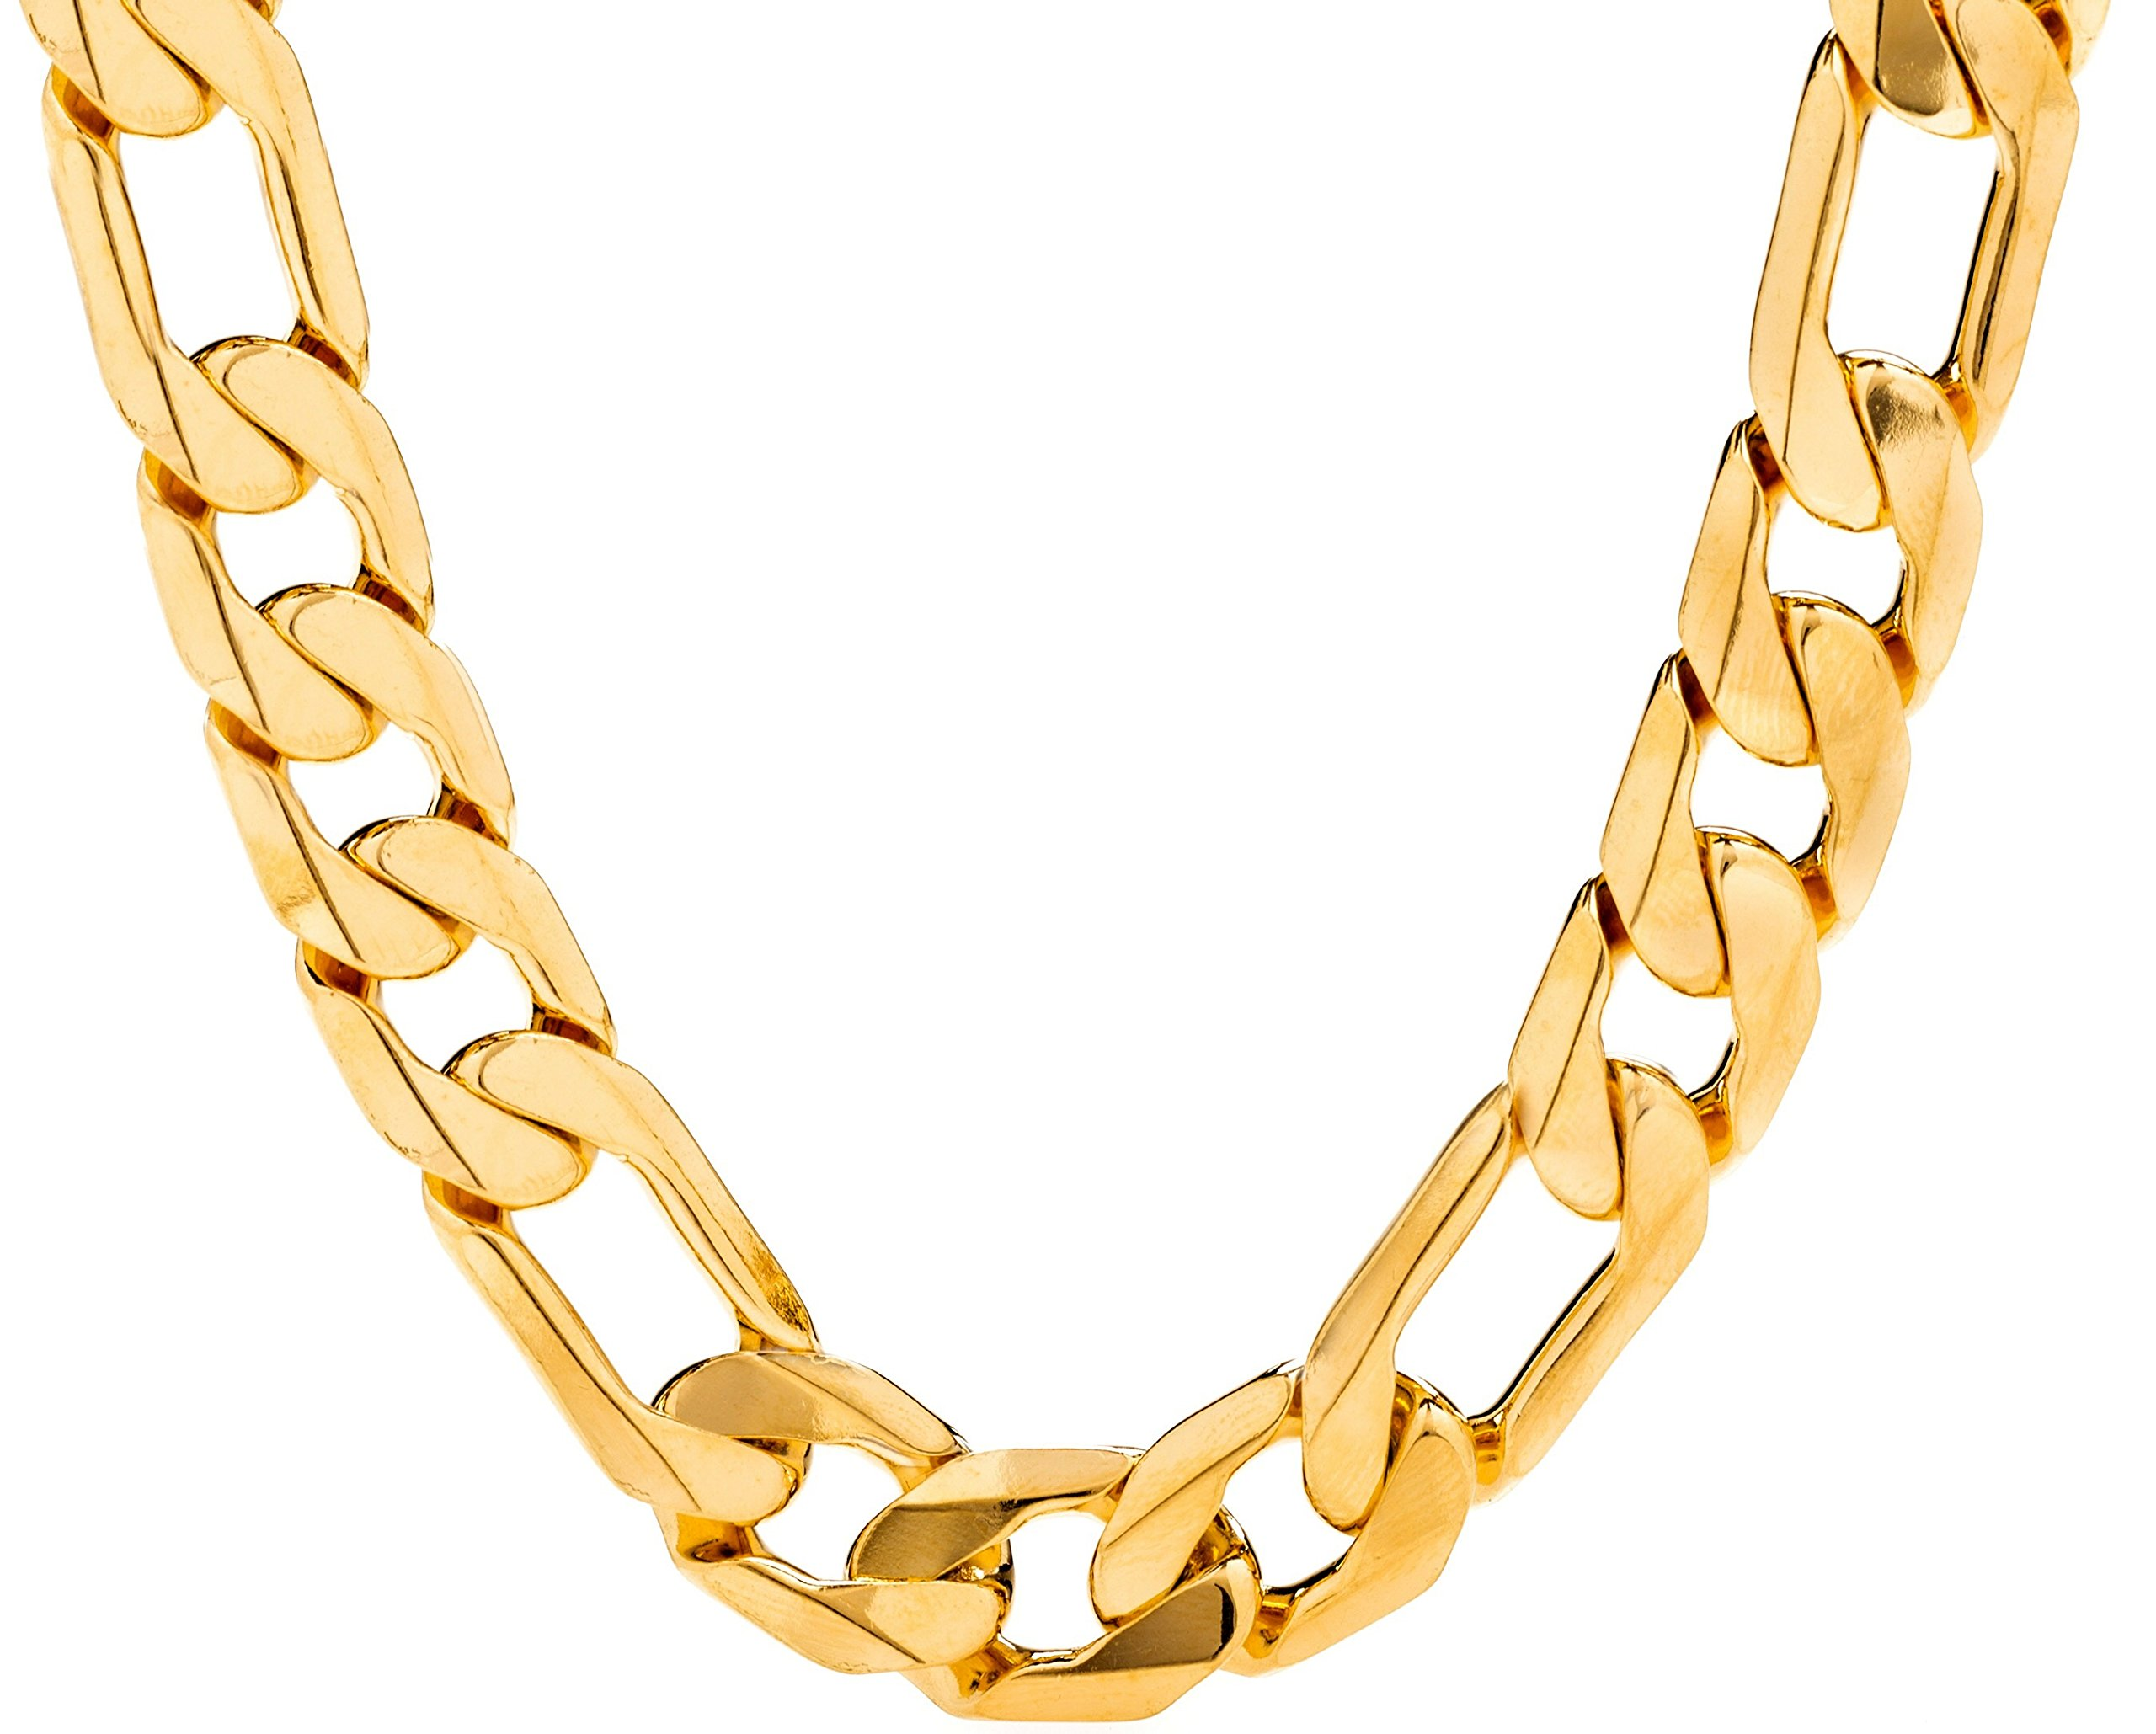 Lifetime Jewelry Figaro Chain 11MM, 24K Gold Over Semi-Precious Metals, Premium Fashion Jewelry, Hip Hop, Comes in a Box or Pouch for Gifts, Guaranteed for Life, 22 Inches by Lifetime Jewelry